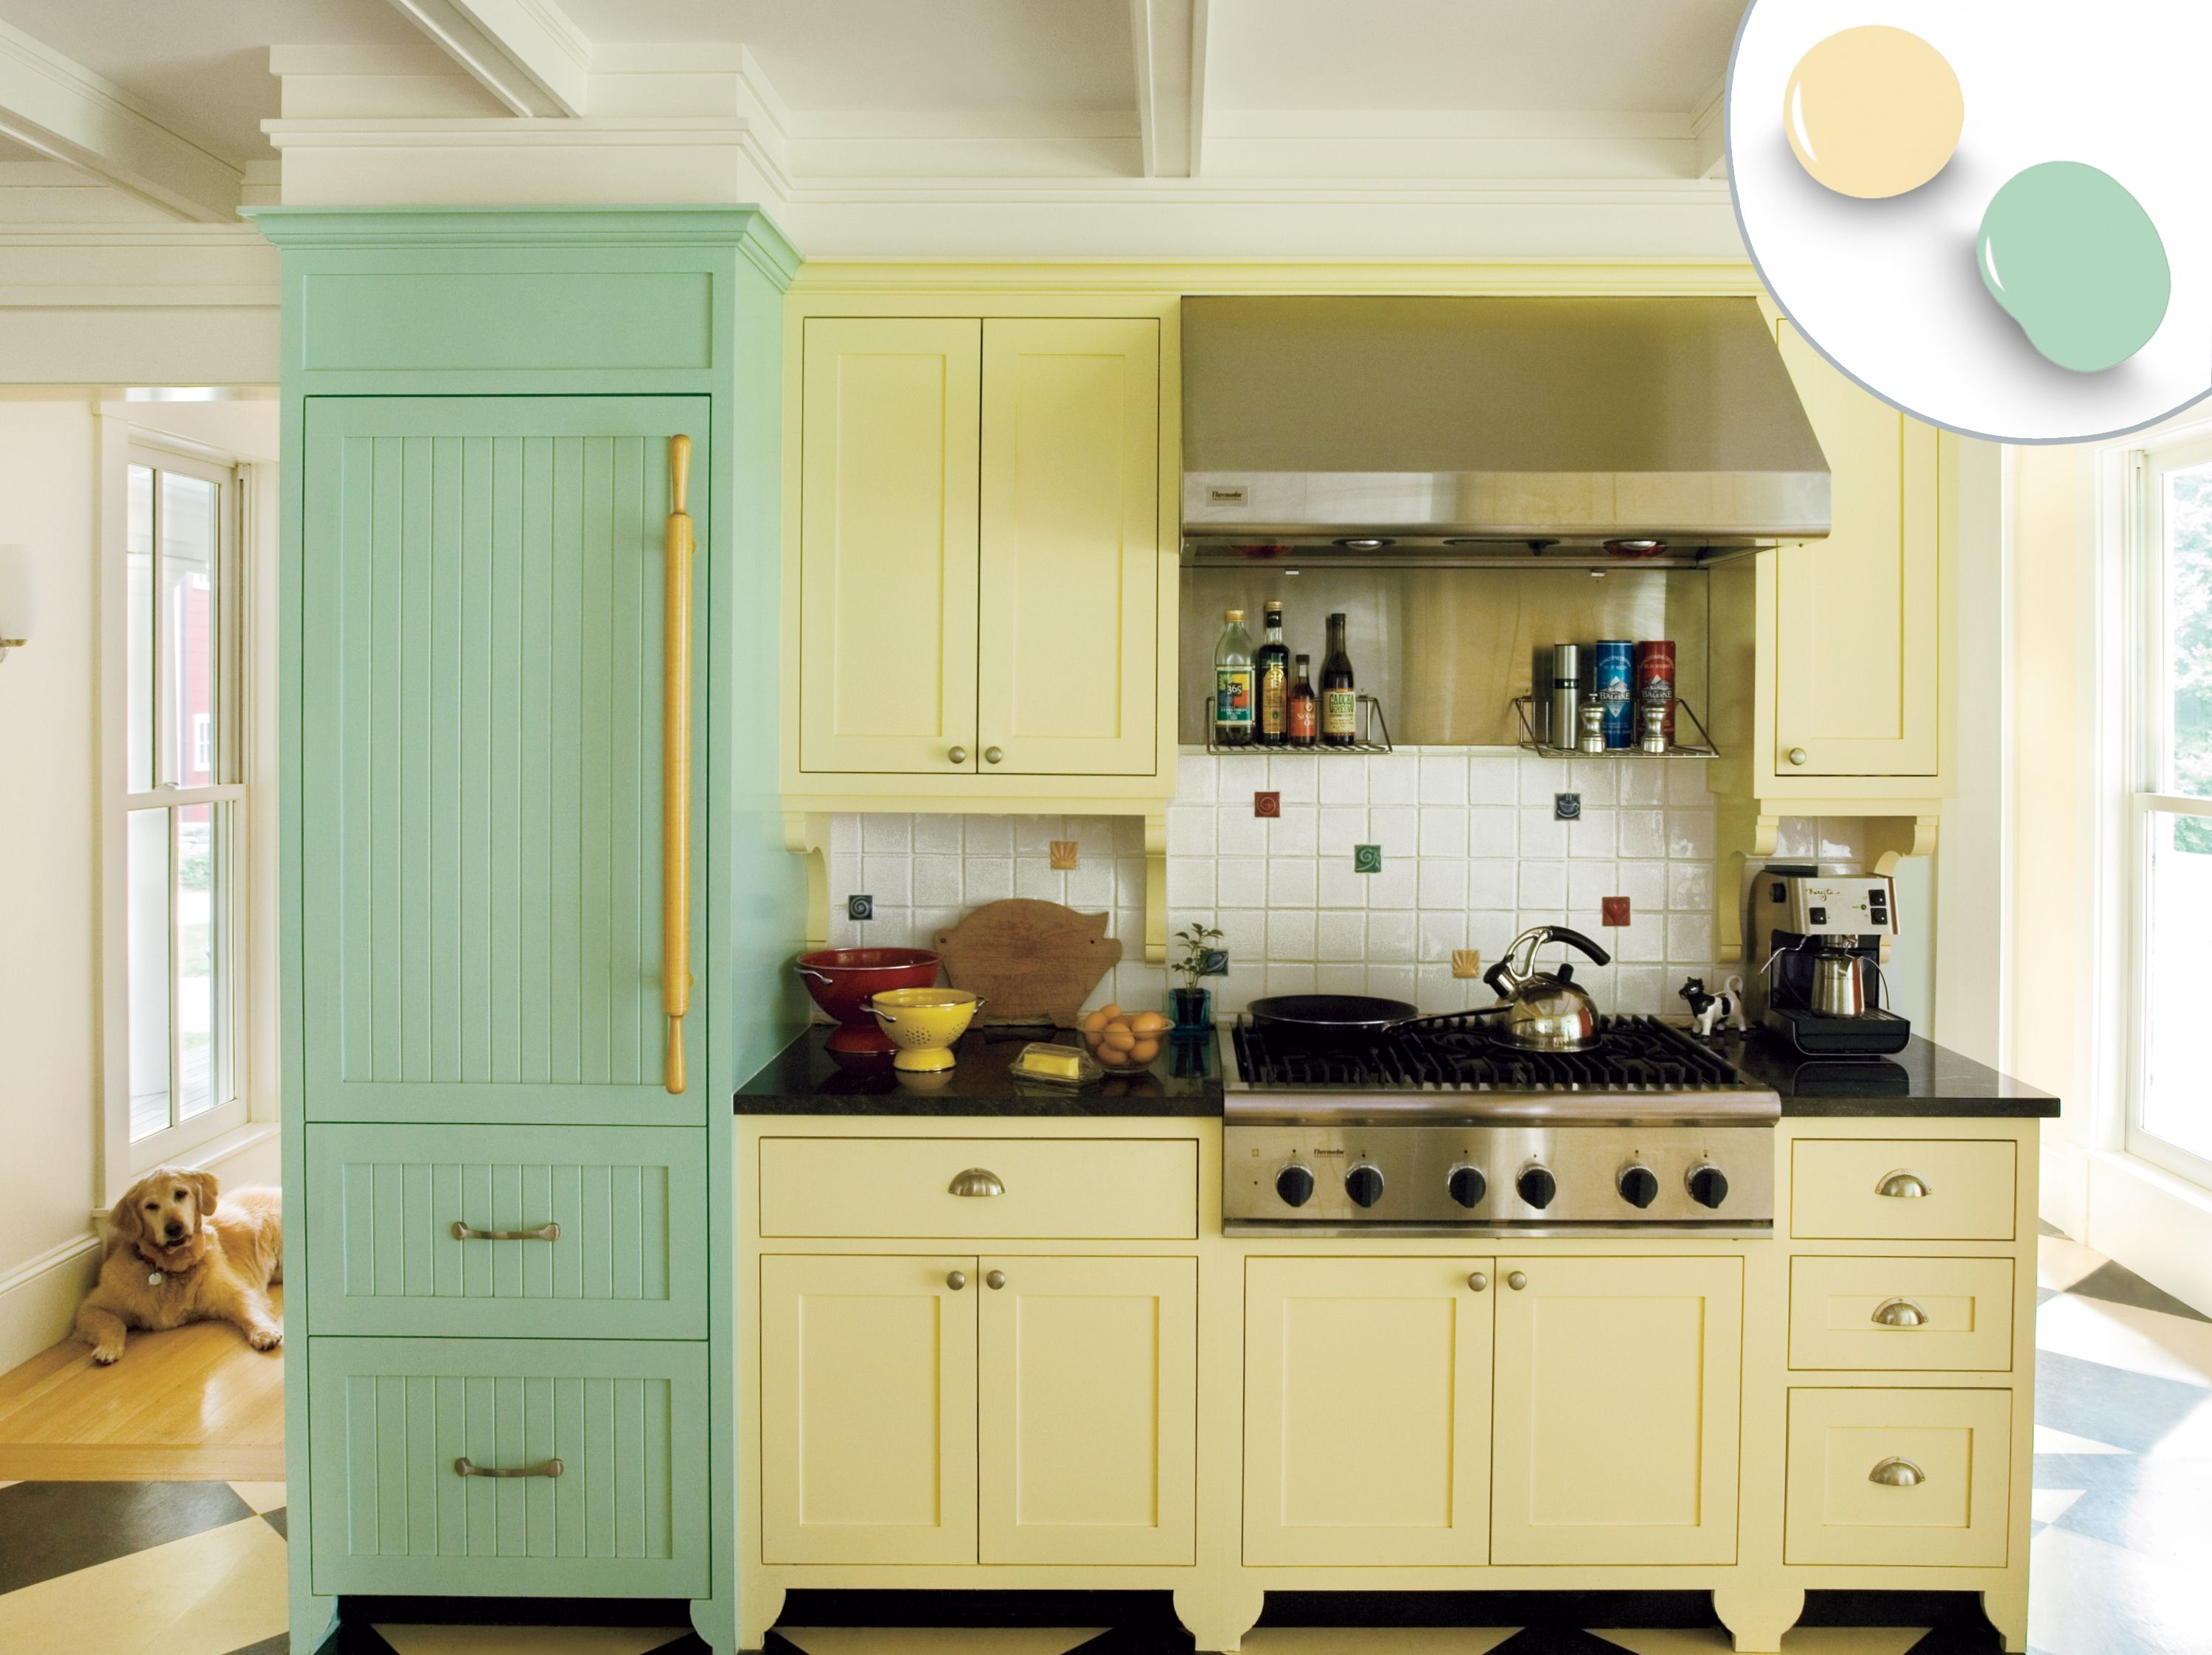 12 Kitchen Cabinet Color Combos That Really Cook Kitchen Design Color Kitchen Cabinet Colors Yellow Kitchen Cabinets